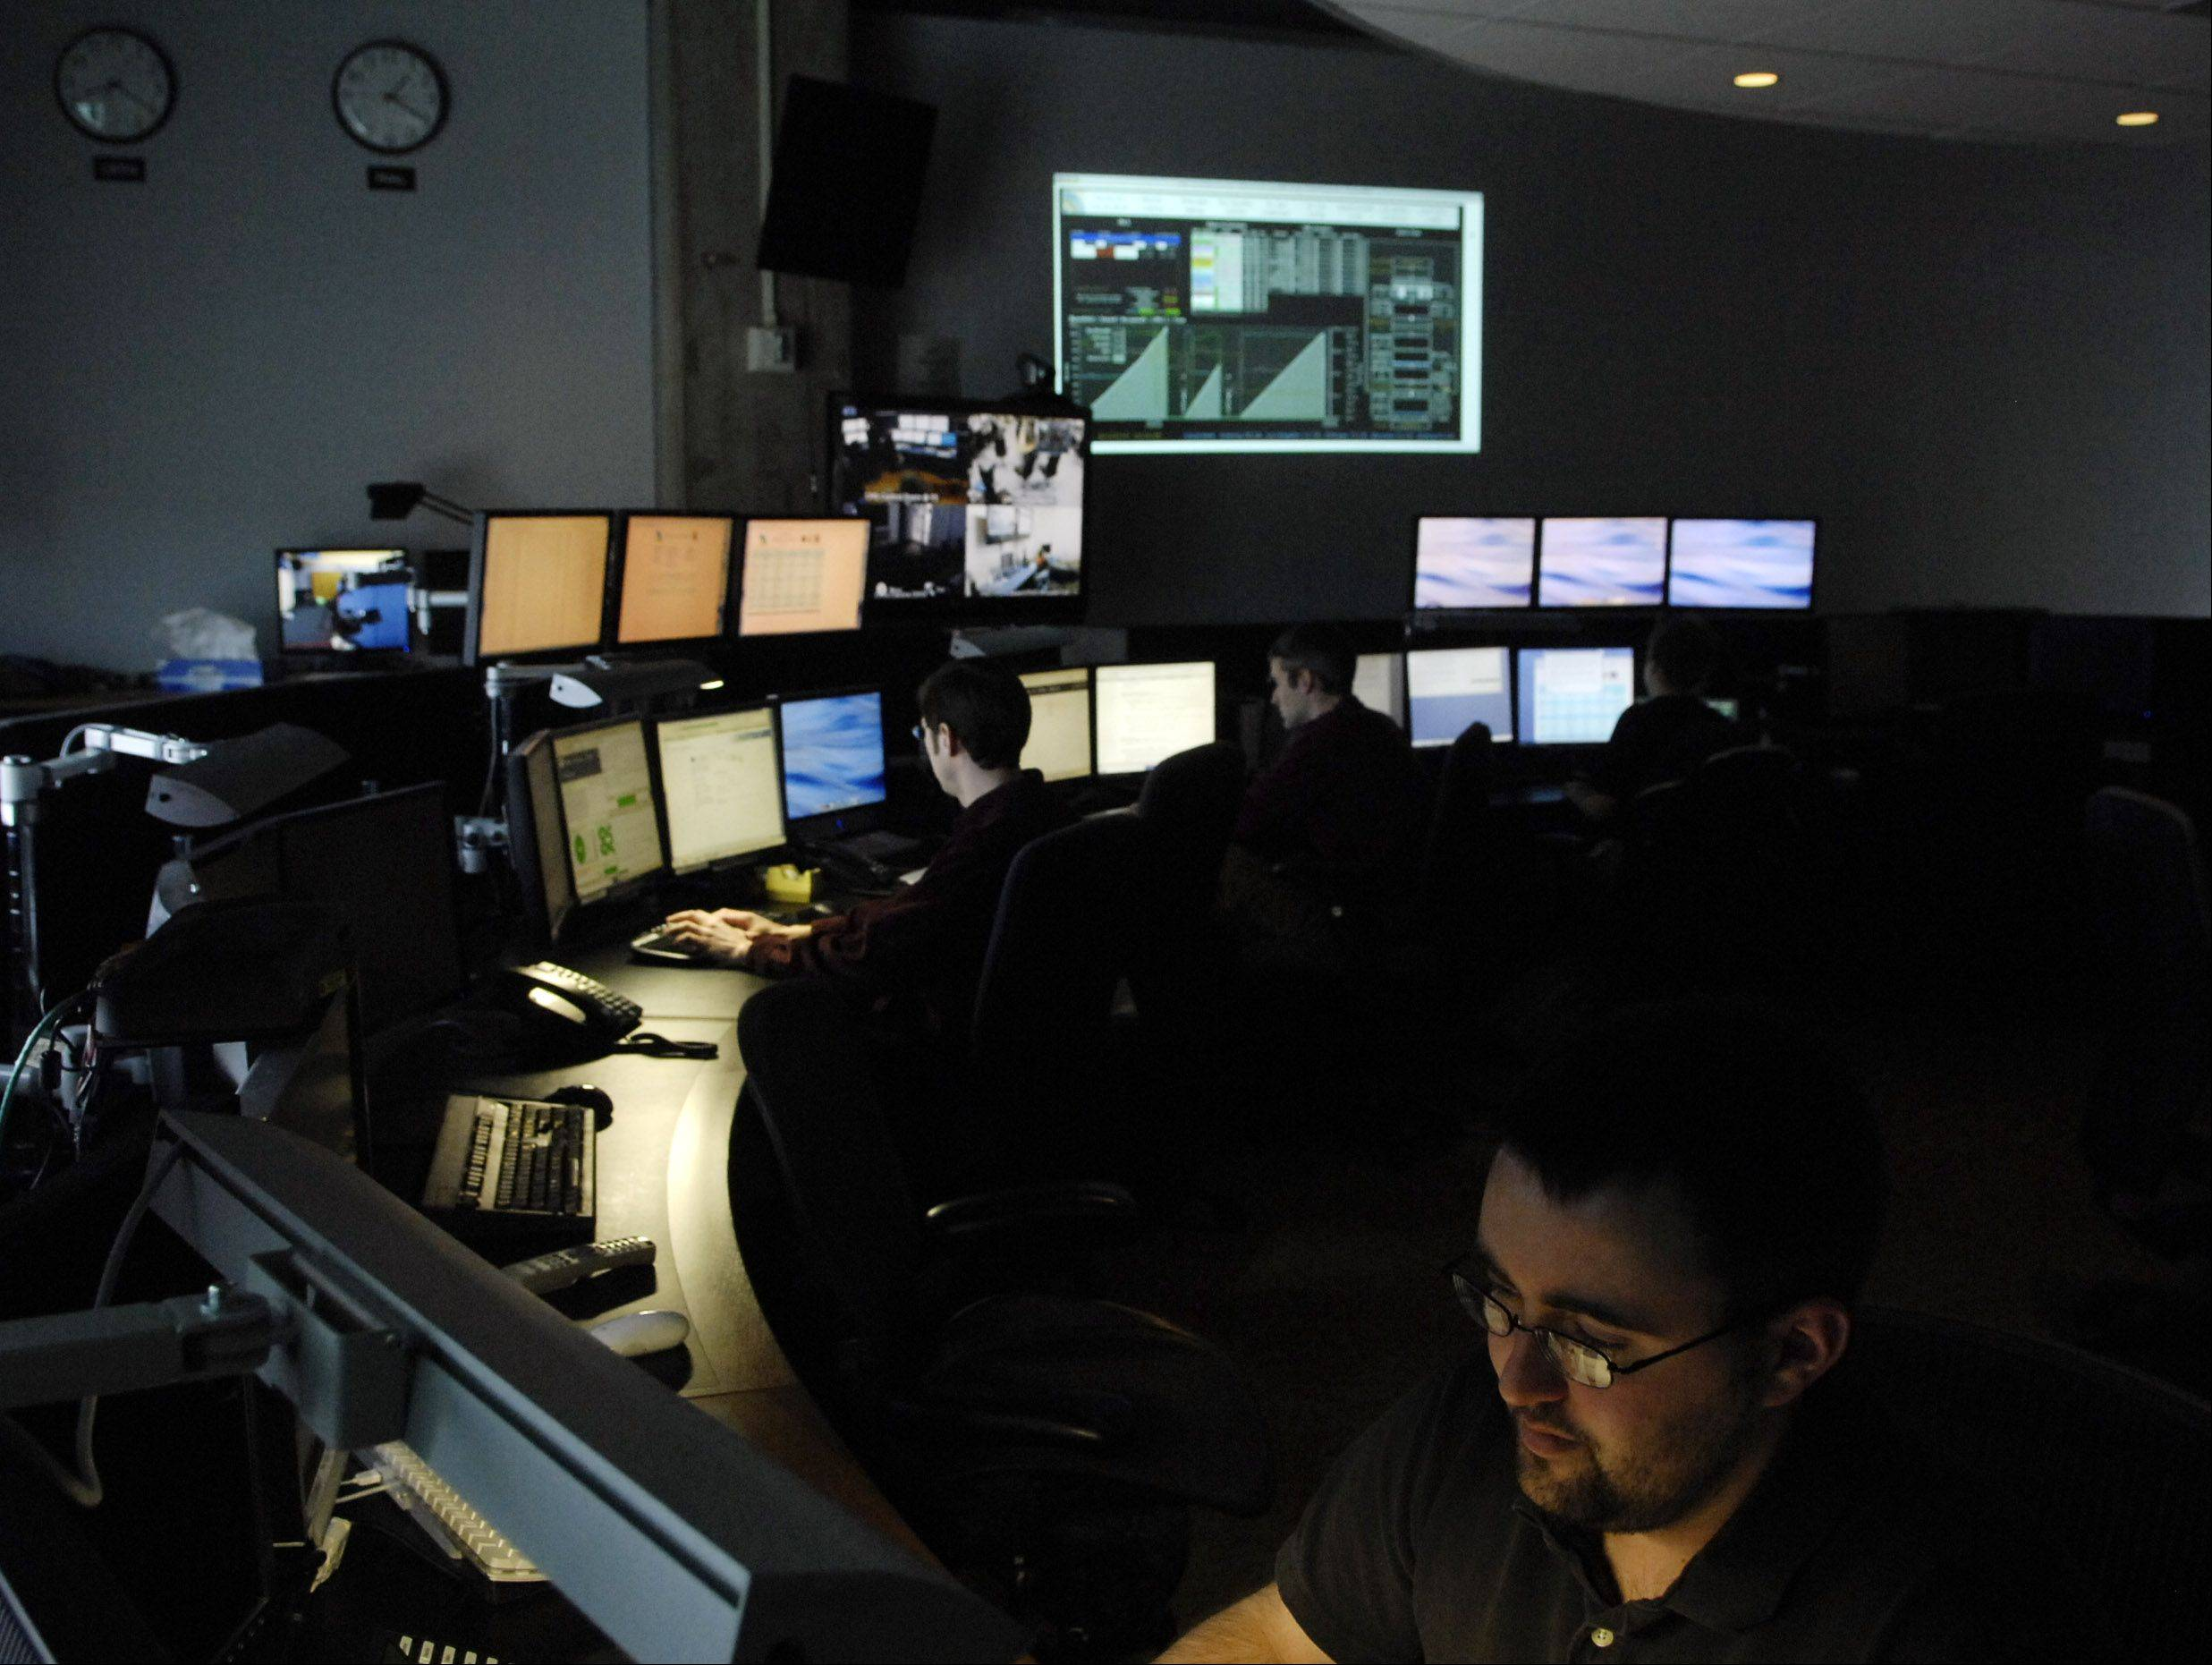 The remote operations center at Fermilab, which monitors experiments going on at the Large Hadron Collider near Geneva, Switzerland. Those experiments include the two that recently announced potential findings of evidence of the Higgs boson particle.